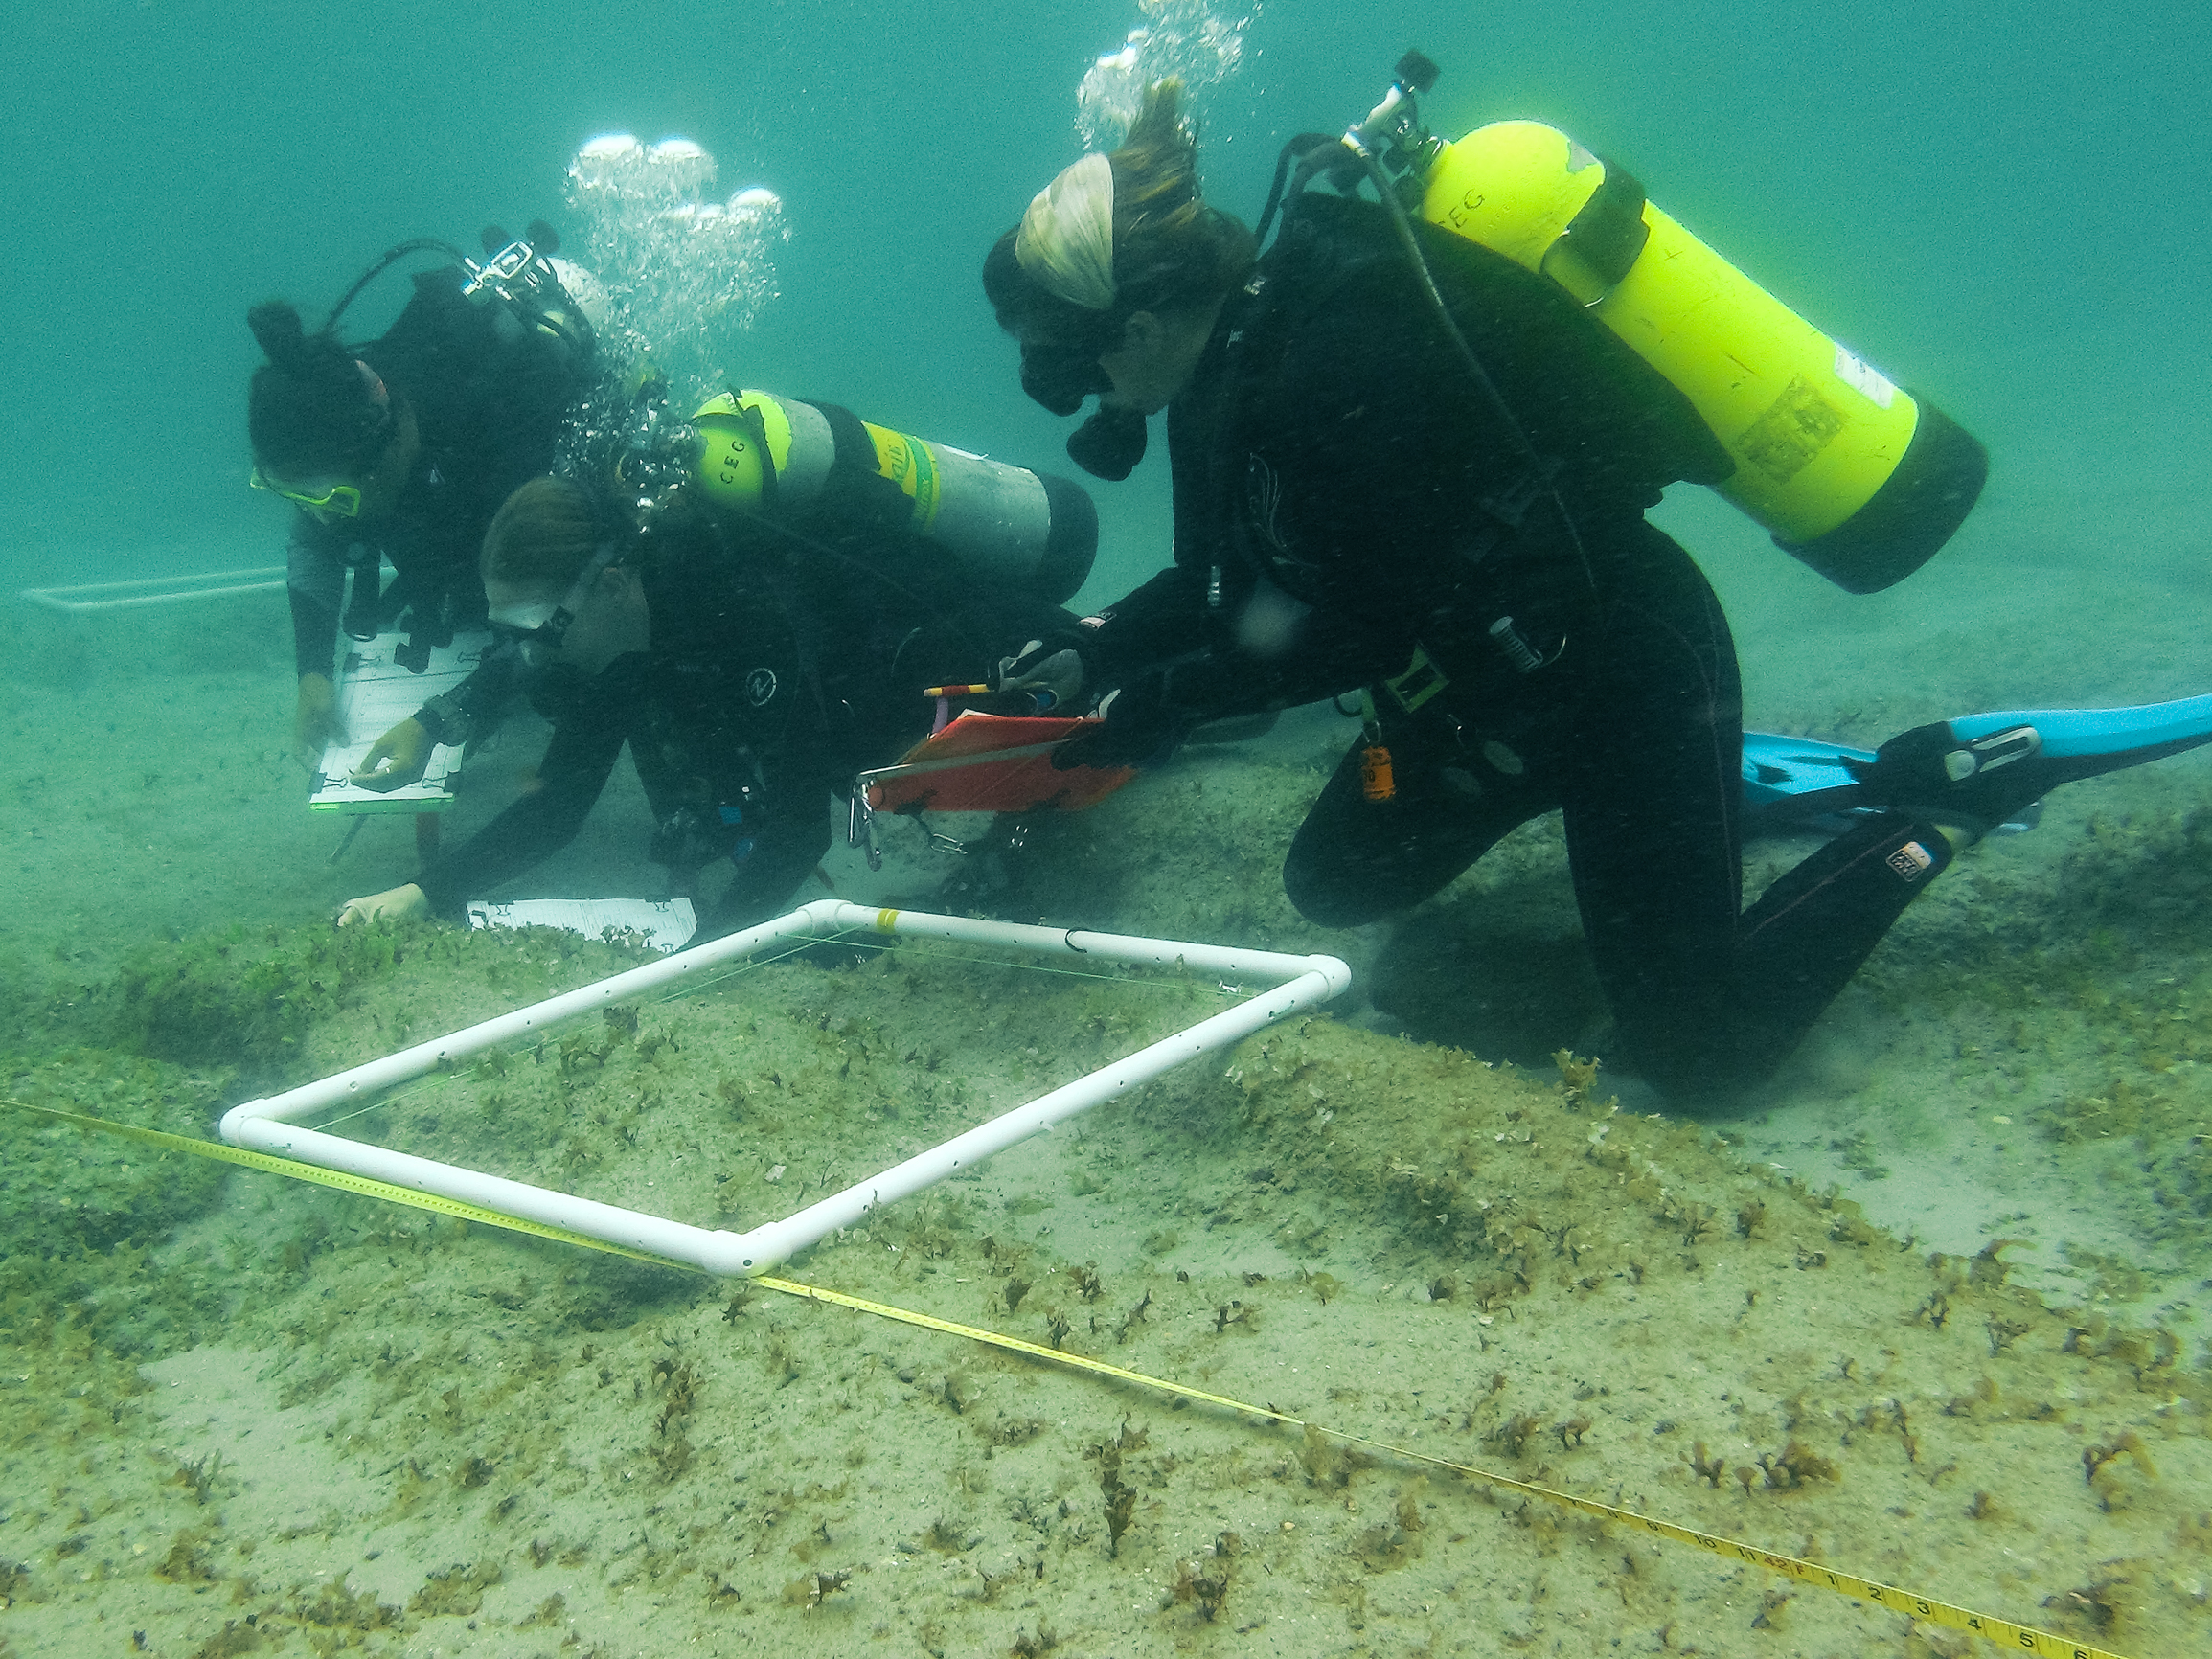 me and the crew probably trying to identify some macroalgae